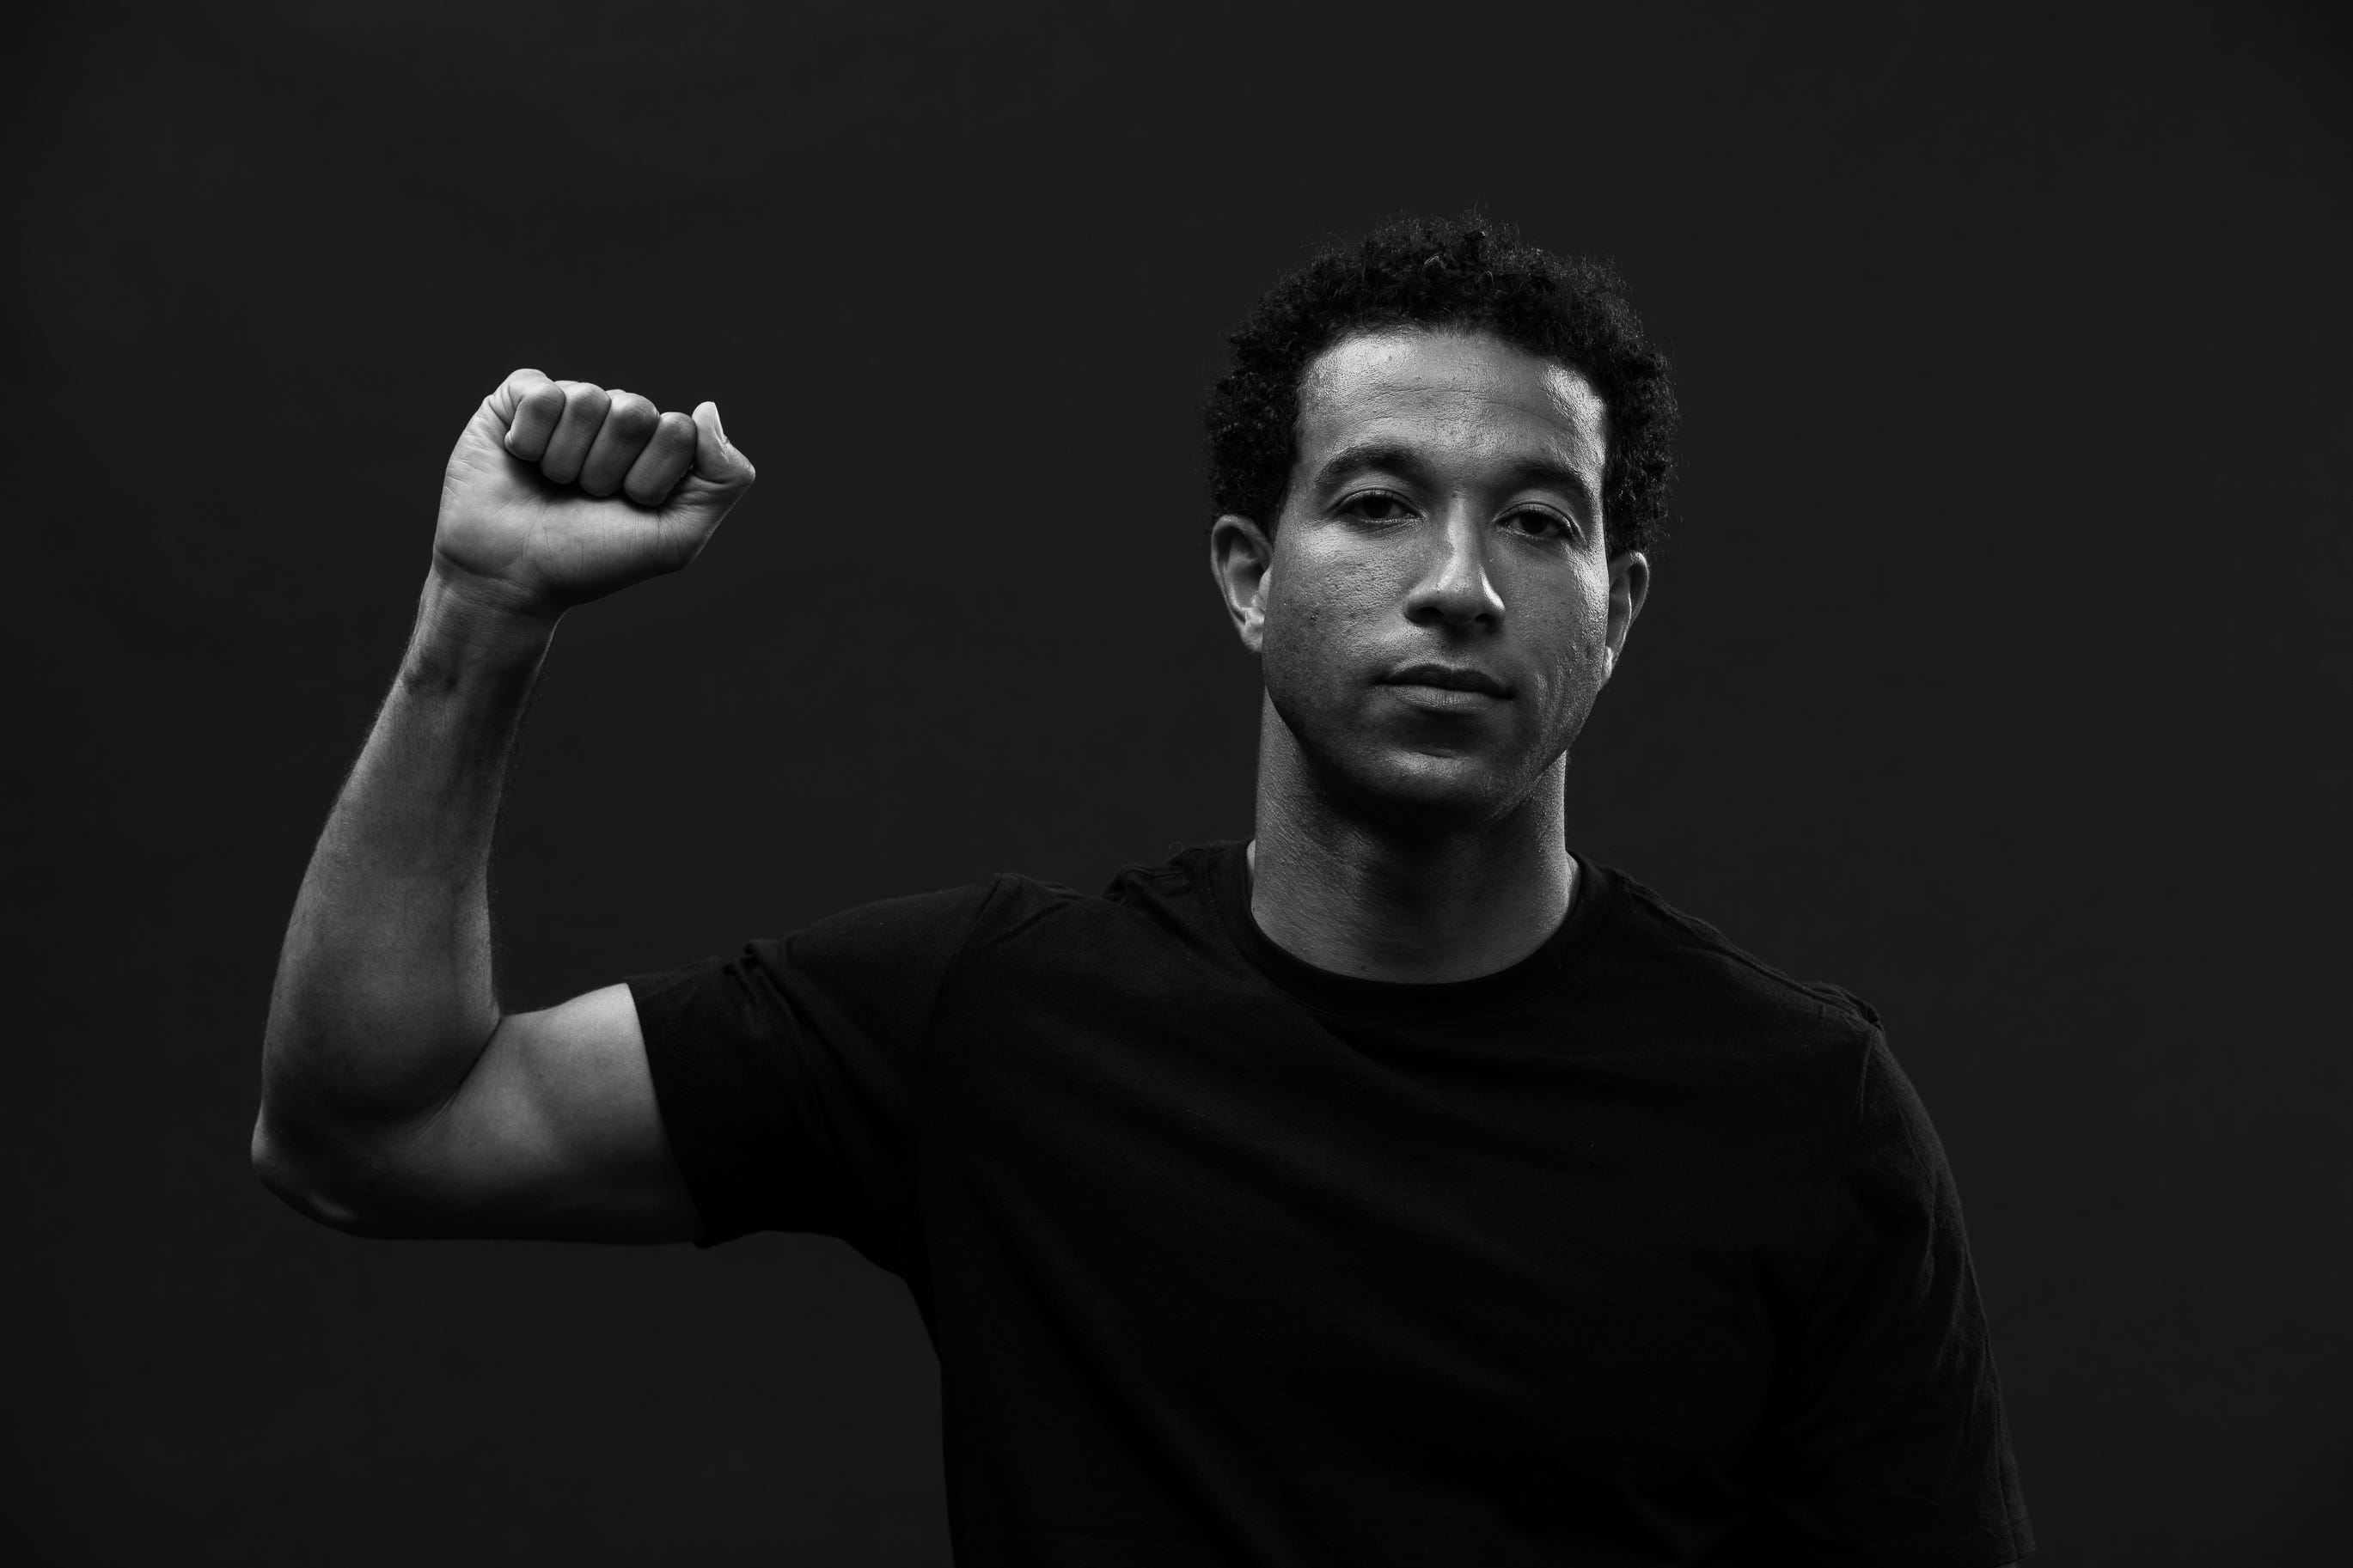 Justin Morrow, 33, is the executive director for Black Players for Change and is a fullback for Toronto FC in Major League Soccer.